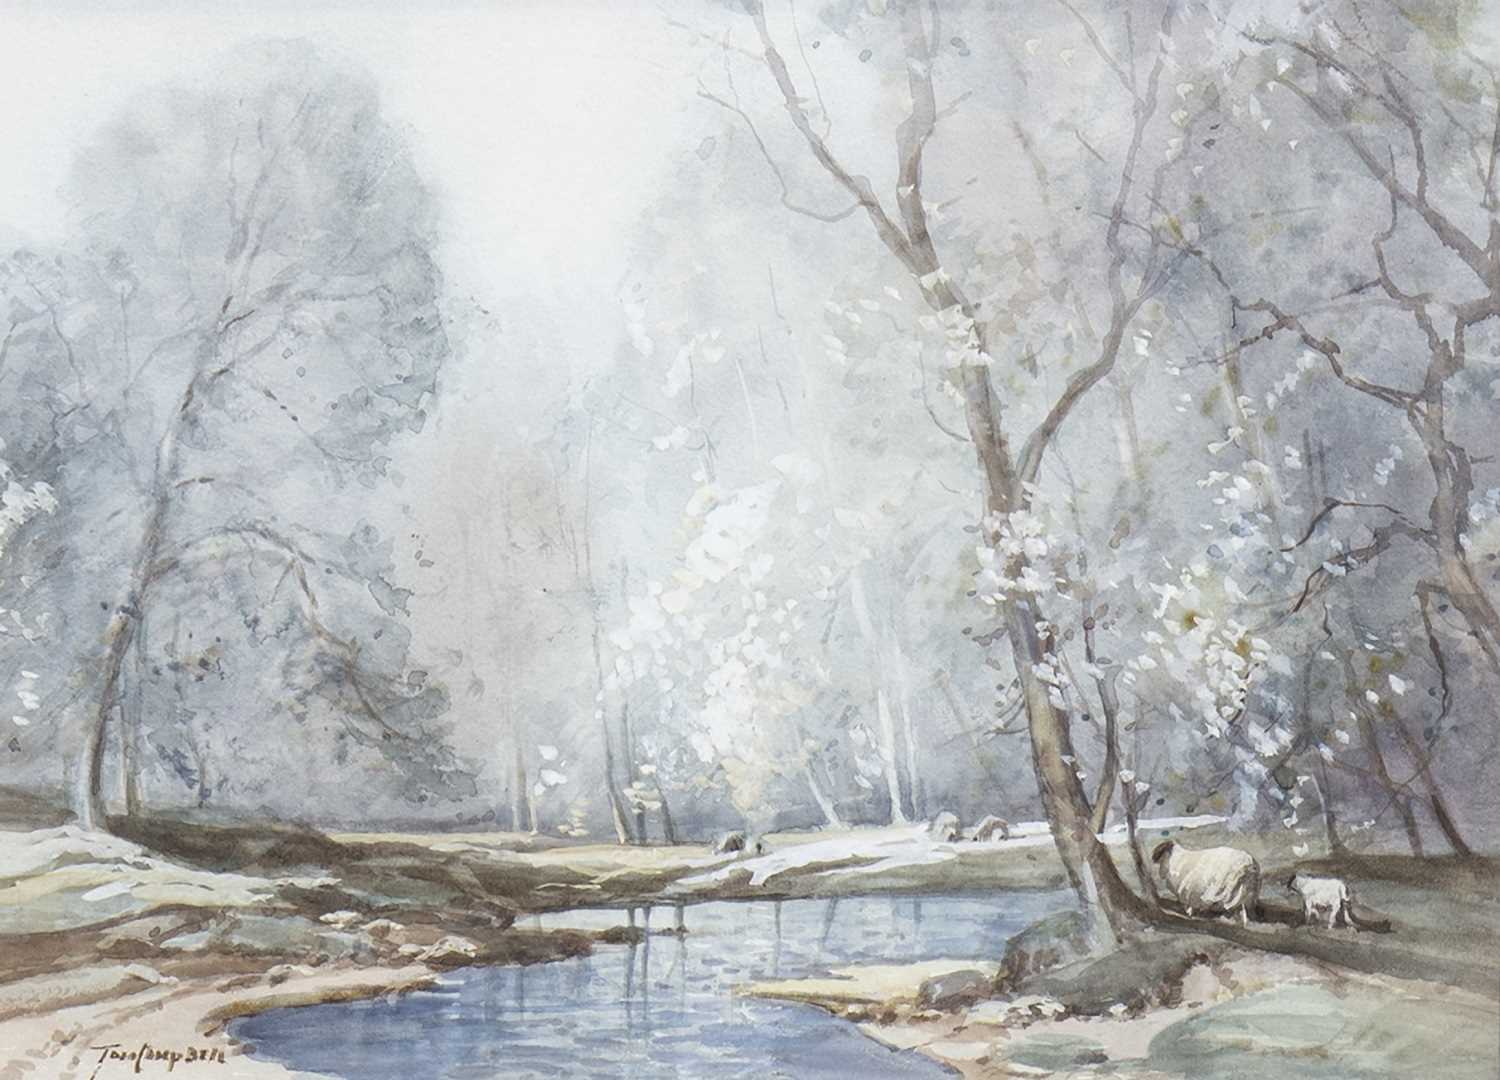 Lot 611-STEAM IN A FOREST, A WATERCOLOUR BY TOM CAMPBELL